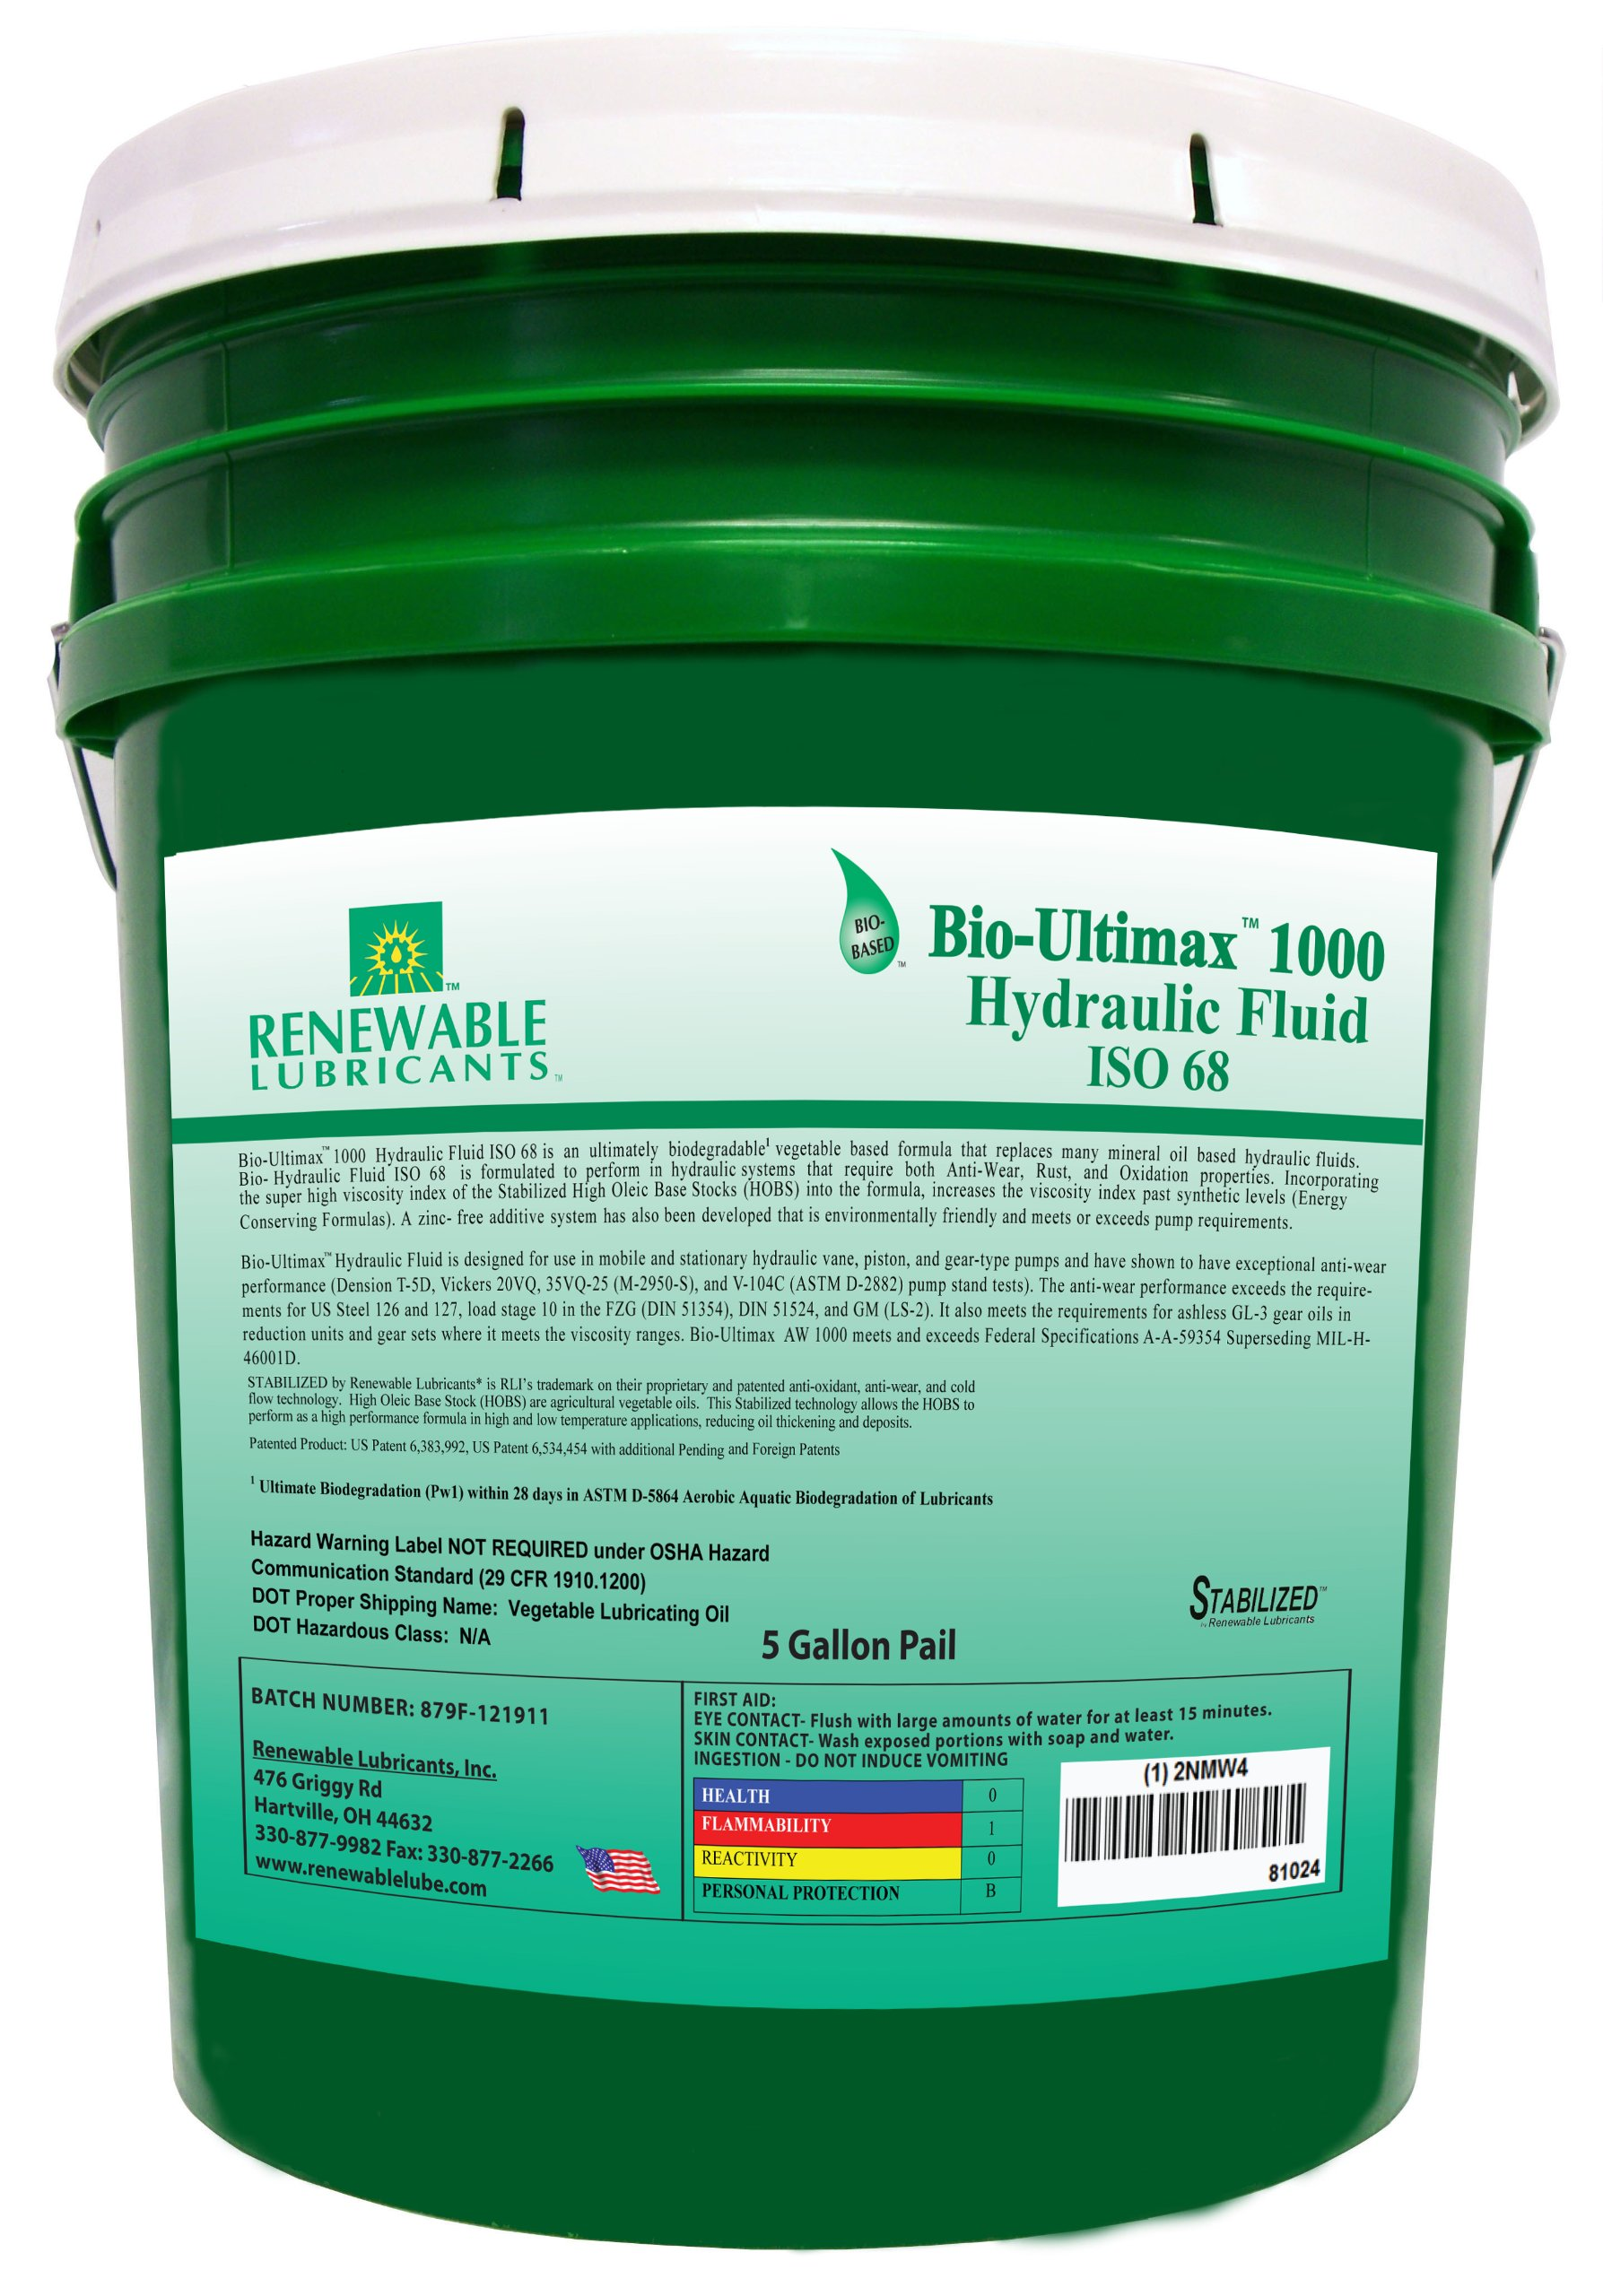 Renewable Lubricants Bio-Ultimax 1000 ISO 68 Hydraulic Lubricant, 5 Gallon Pail